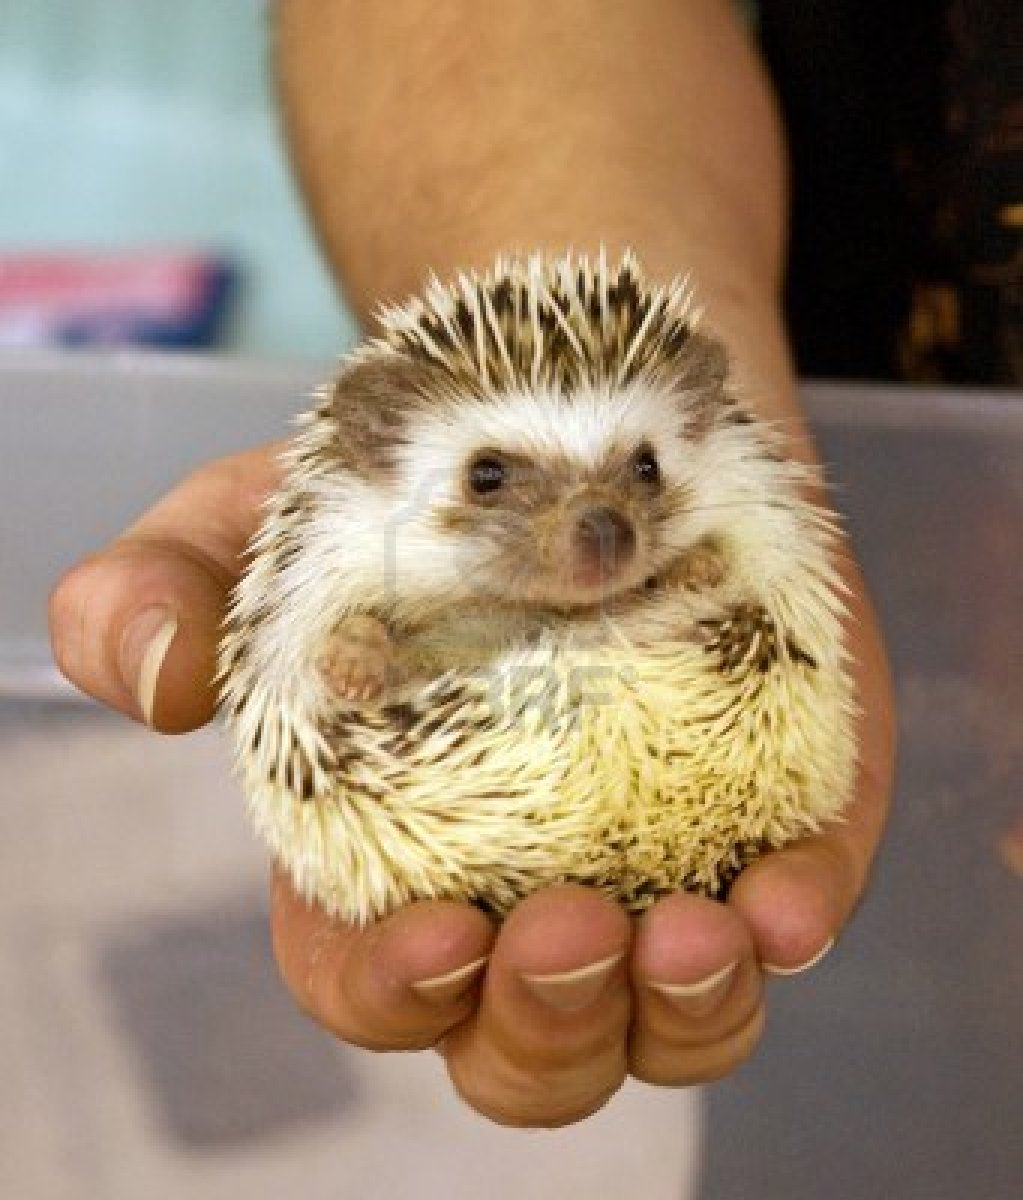 11298078-a-man-holds-a-domesticated-hedgehog-pet-in-the-palm-of-his-hand.jpg